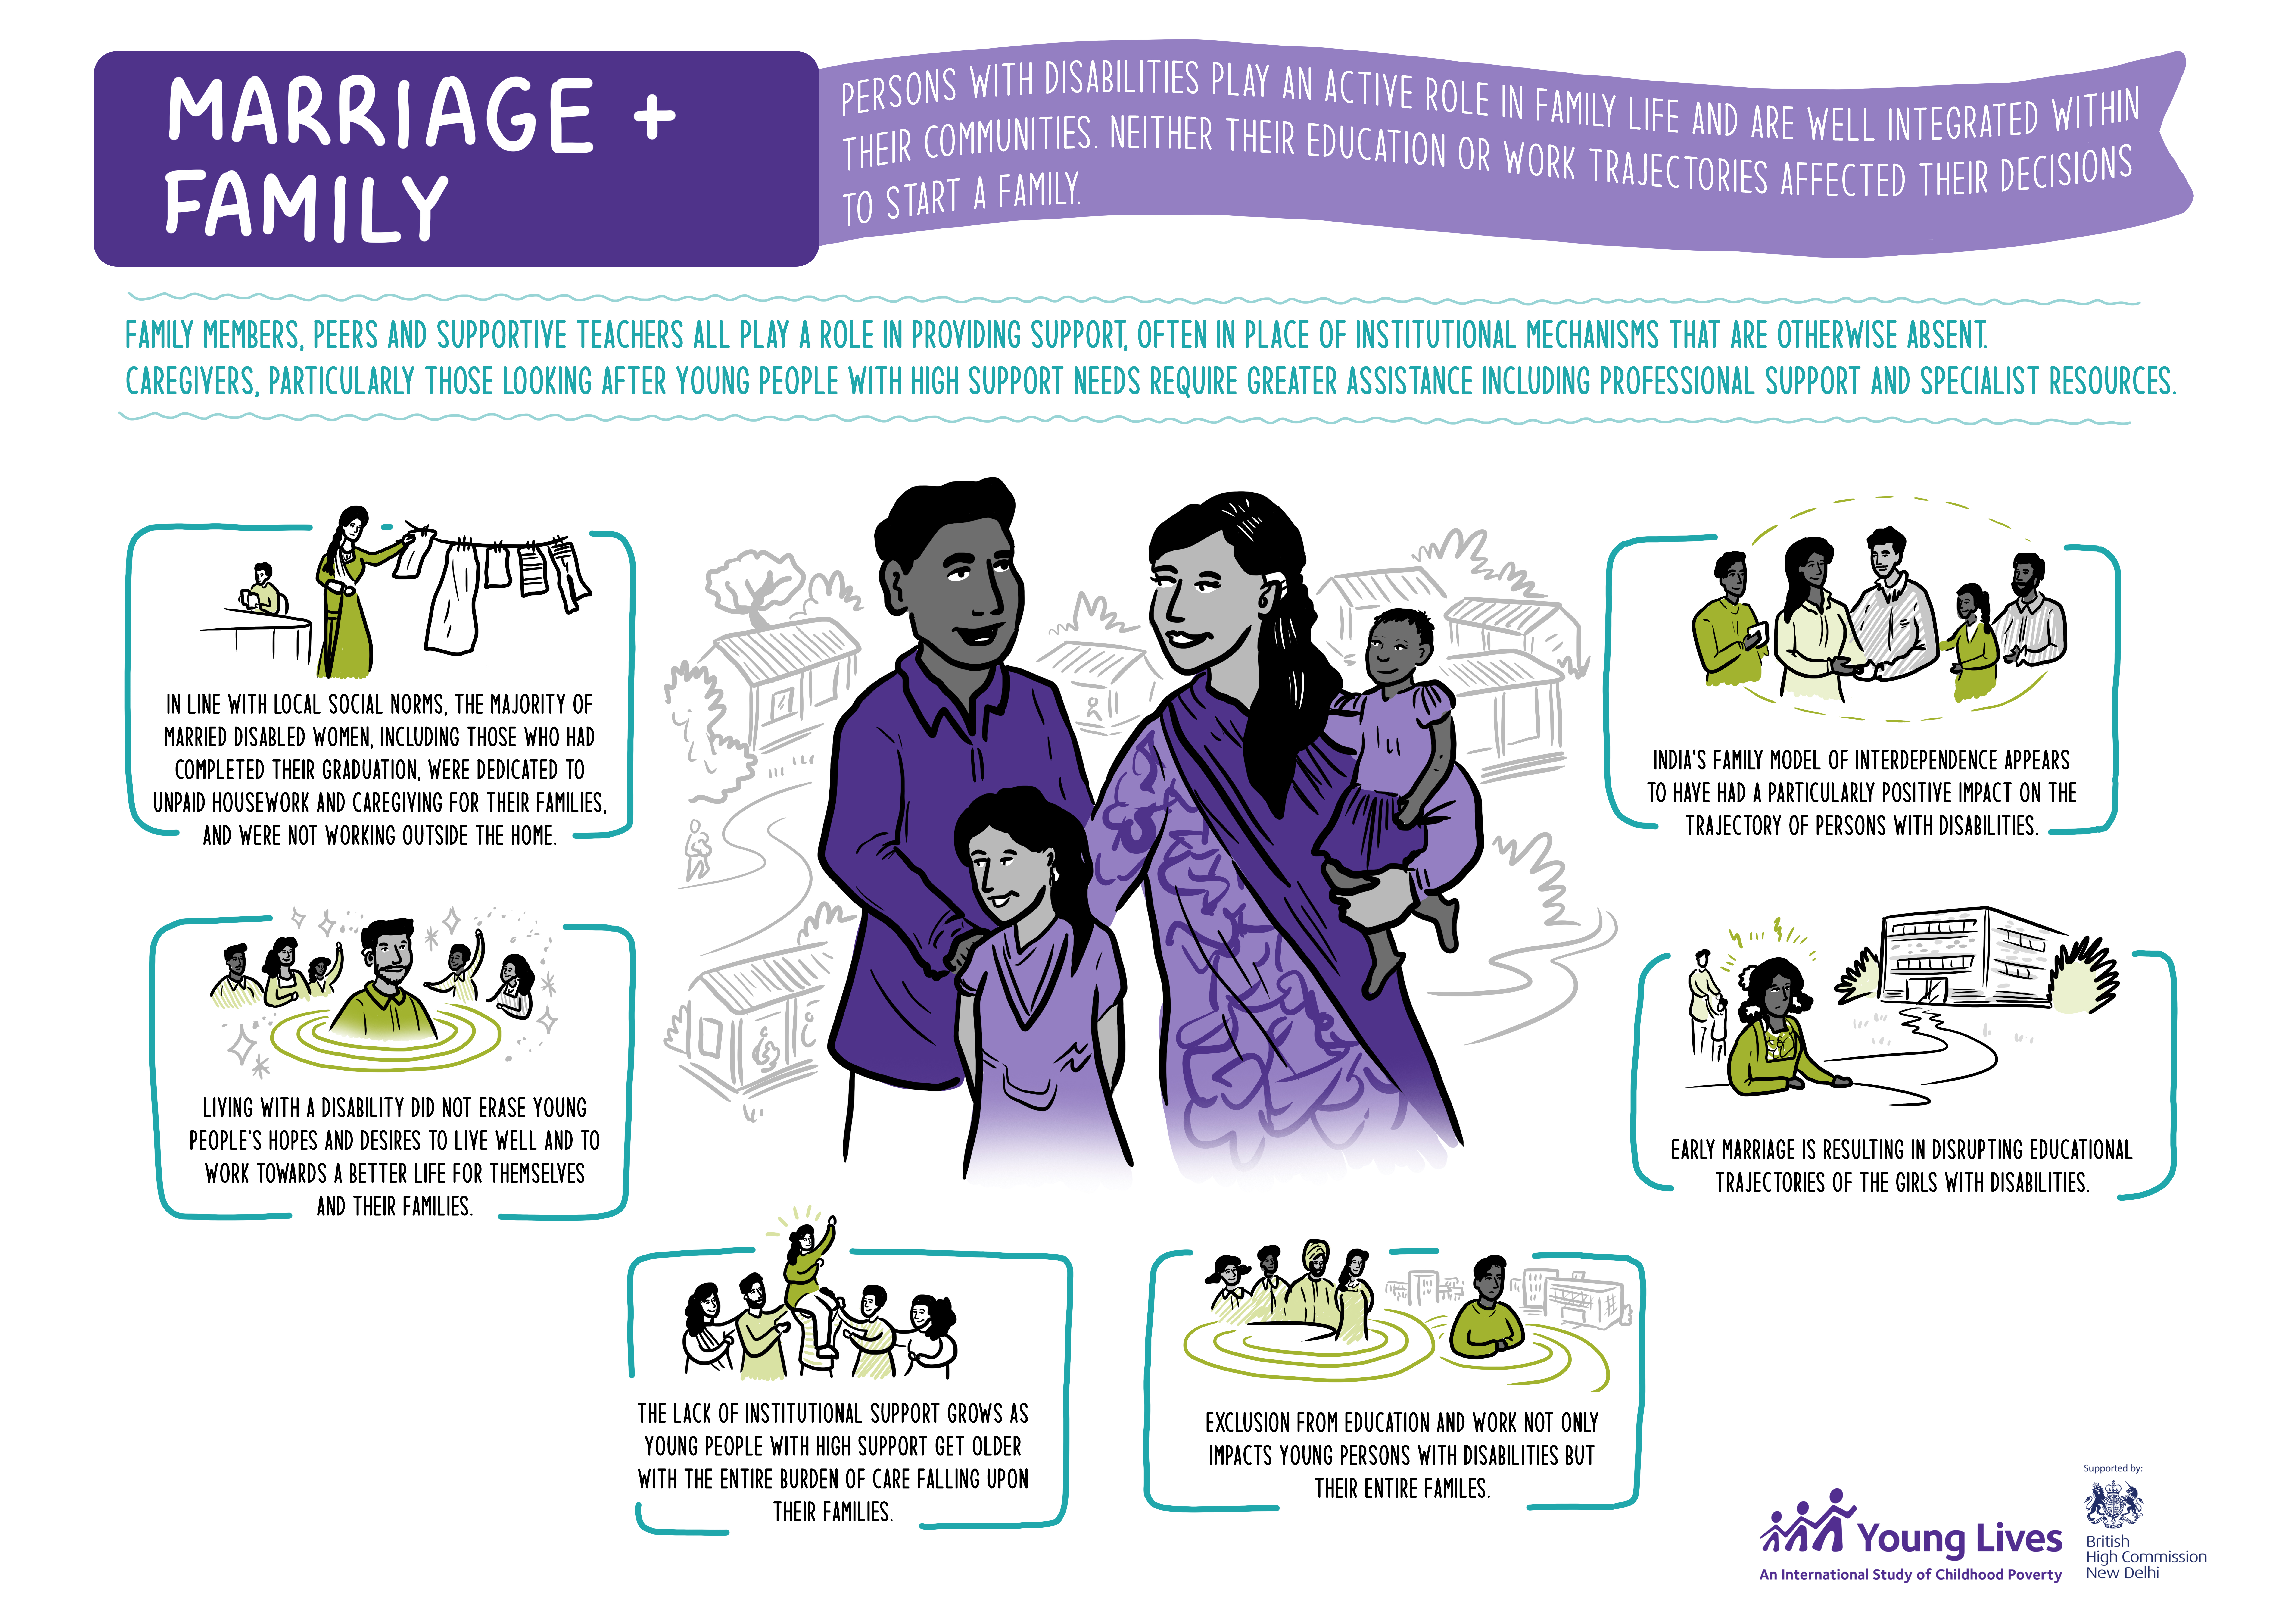 Illustration of marriage and family formation for young people living with disabilities in India